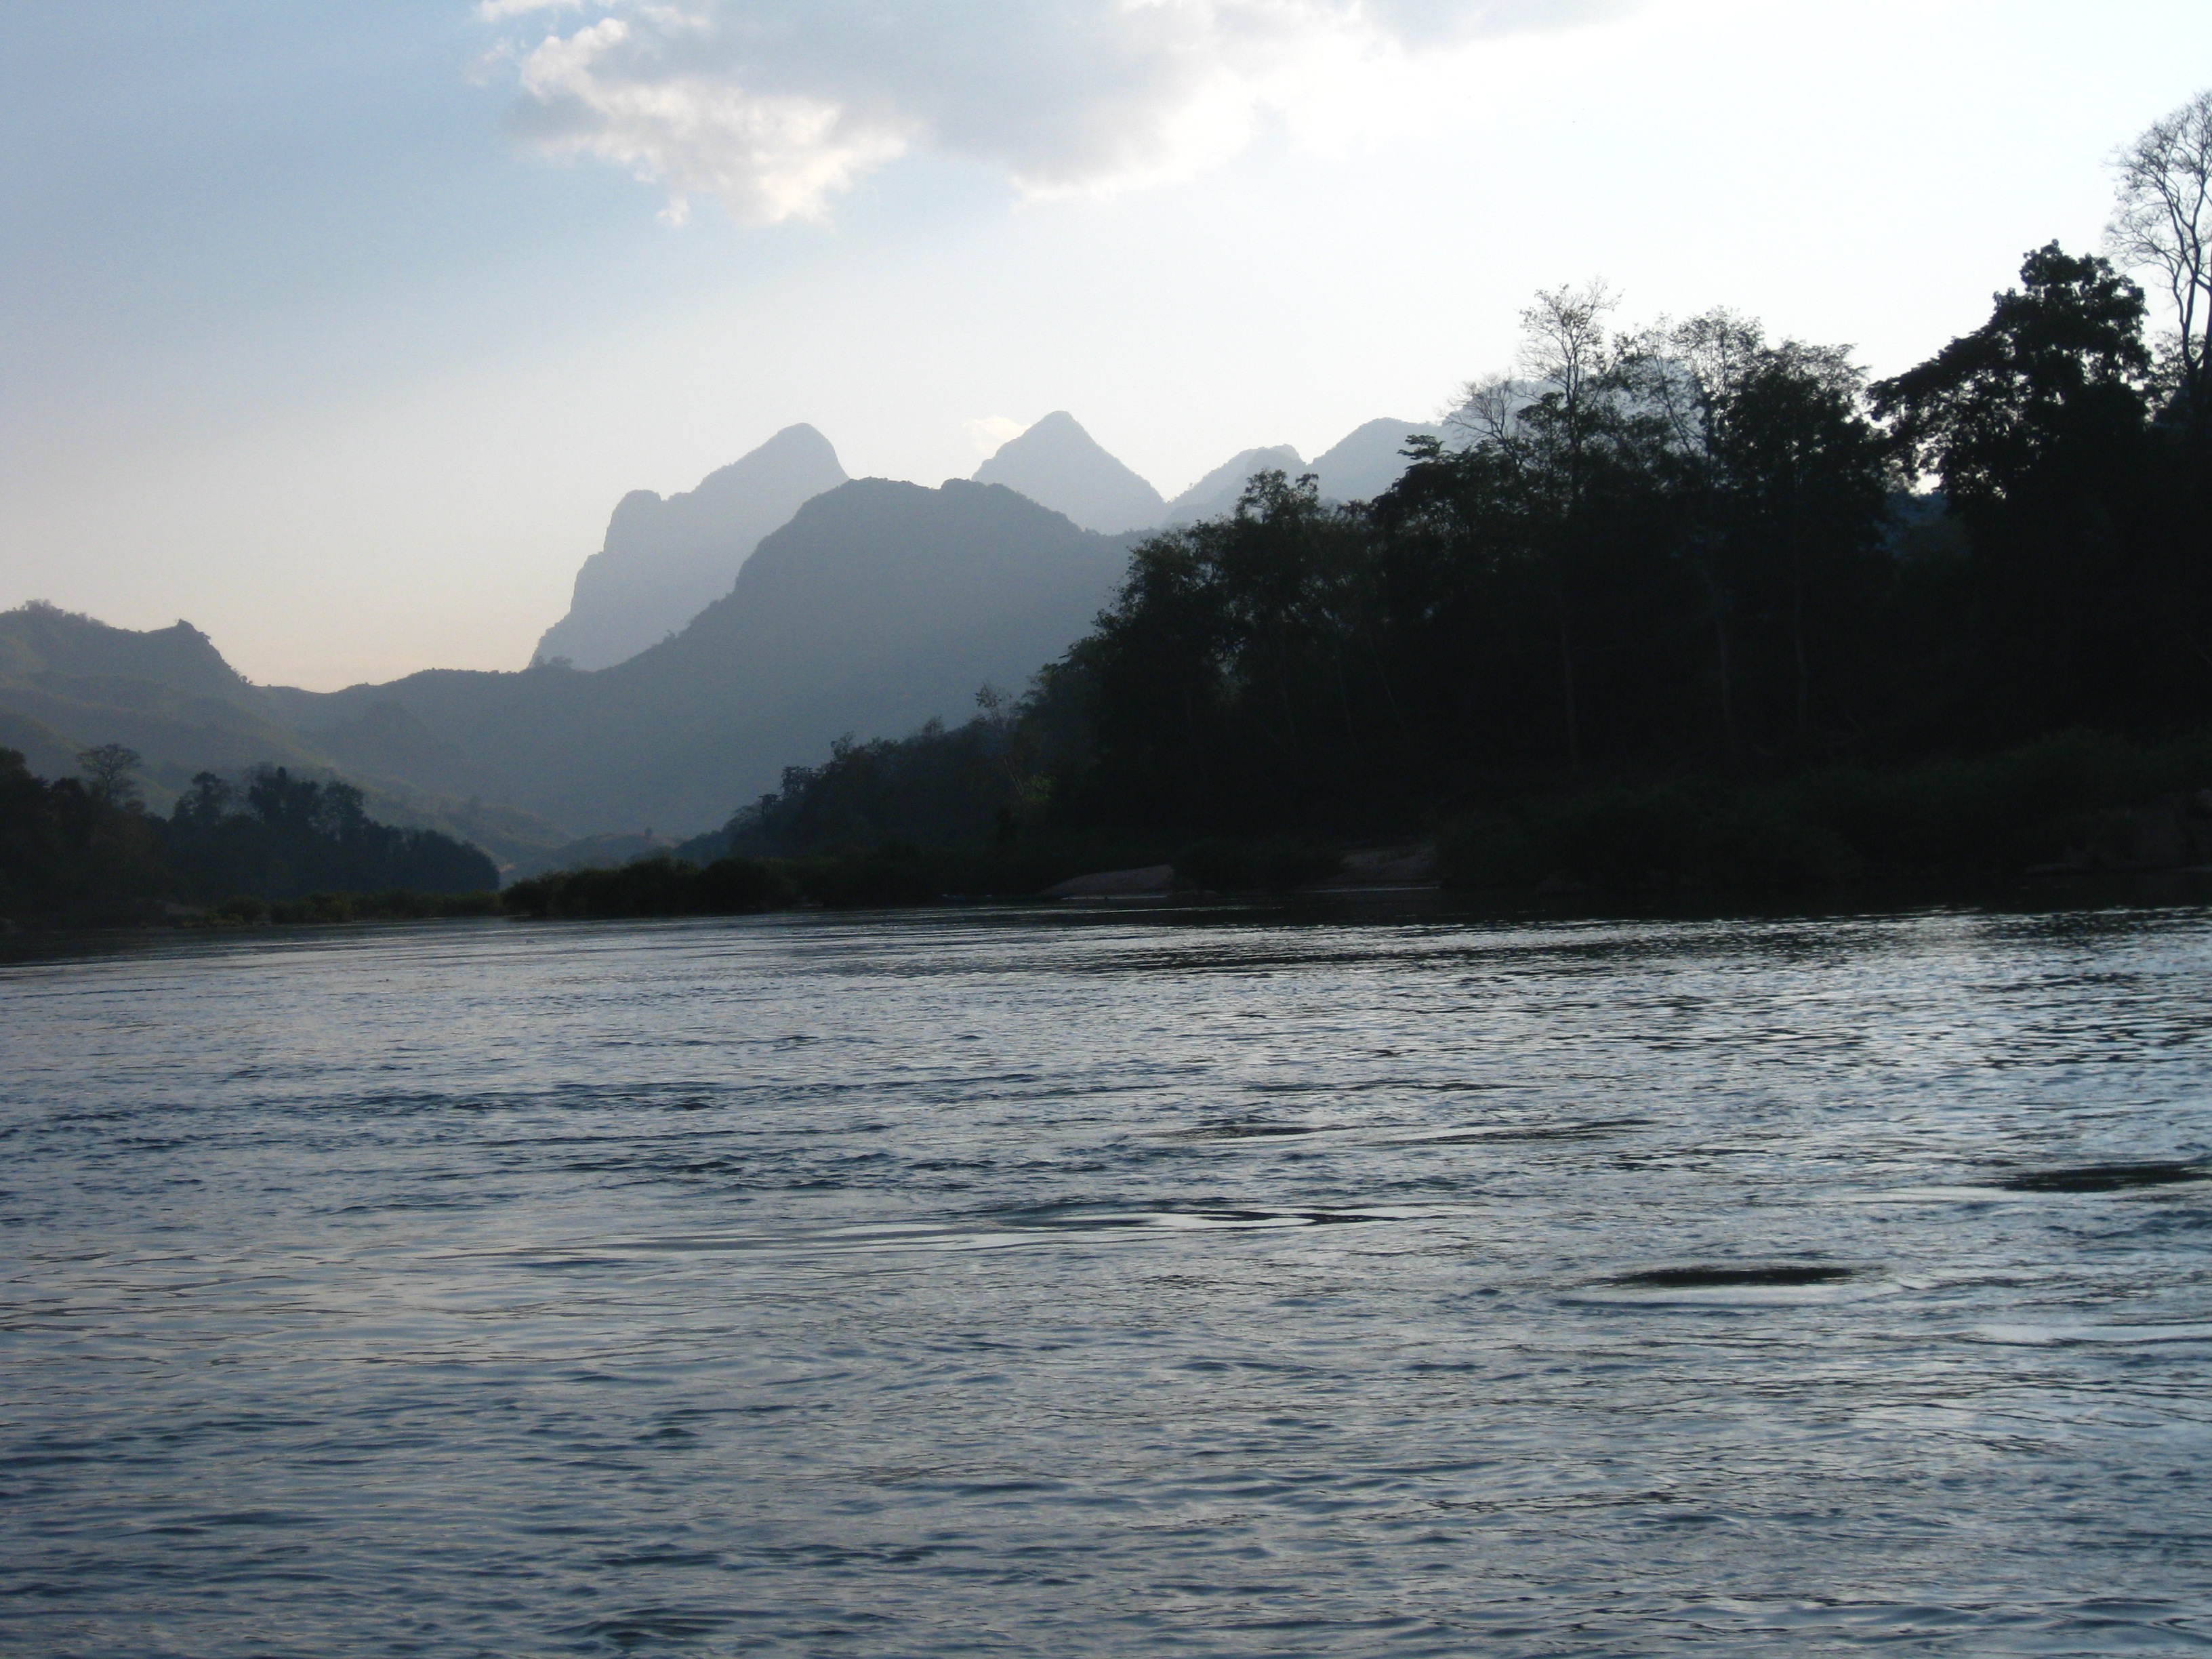 MMAP 2005 – A Day in the Life of an Archaeologist: A Weblog from Laos